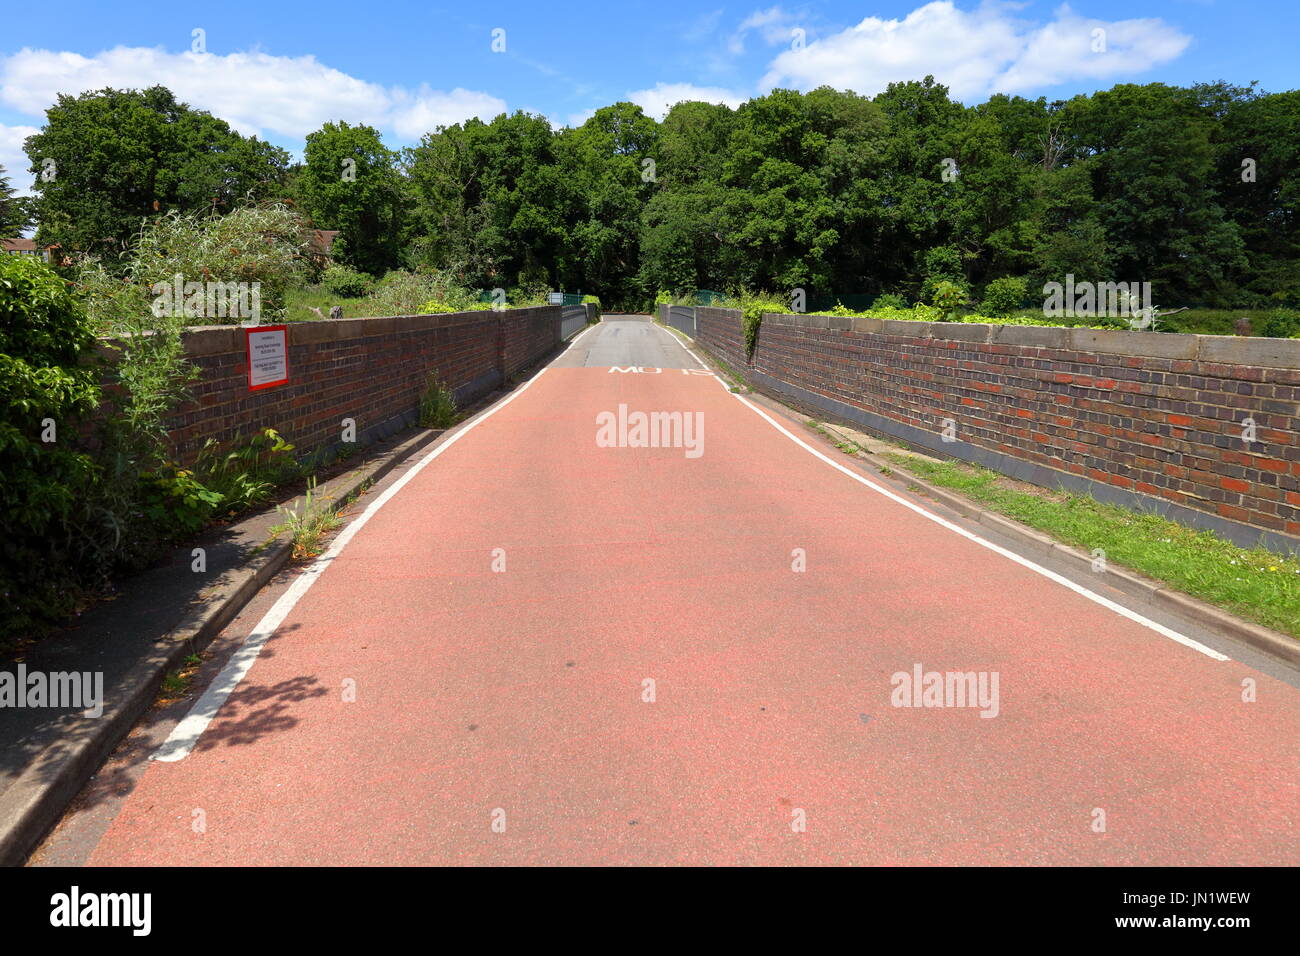 A roadway crossing the Great Western Railway at Sonning cutting over the Warren road steel bridge with its new road surface. - Stock Image